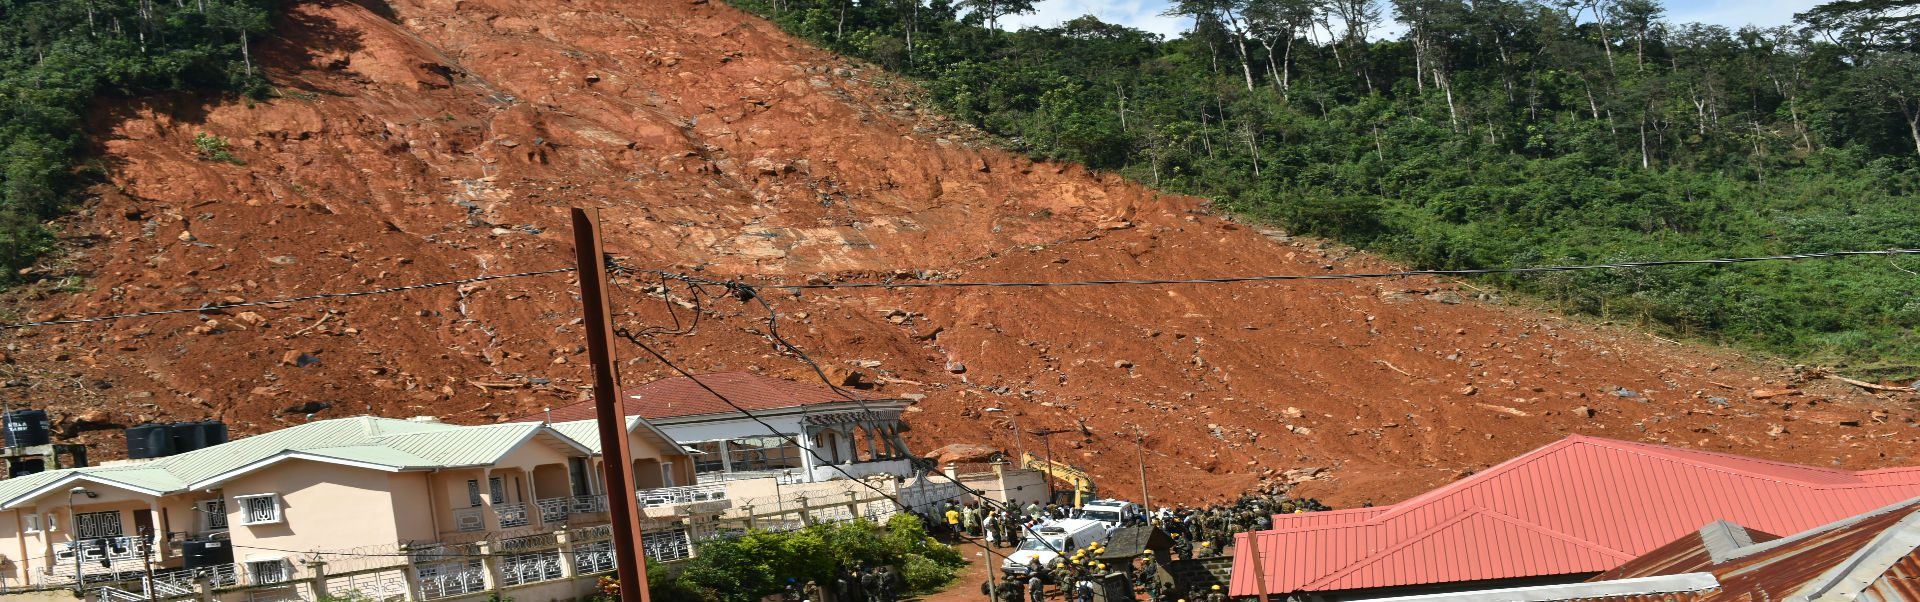 Support people affected by the mudslides in Sierra Leone